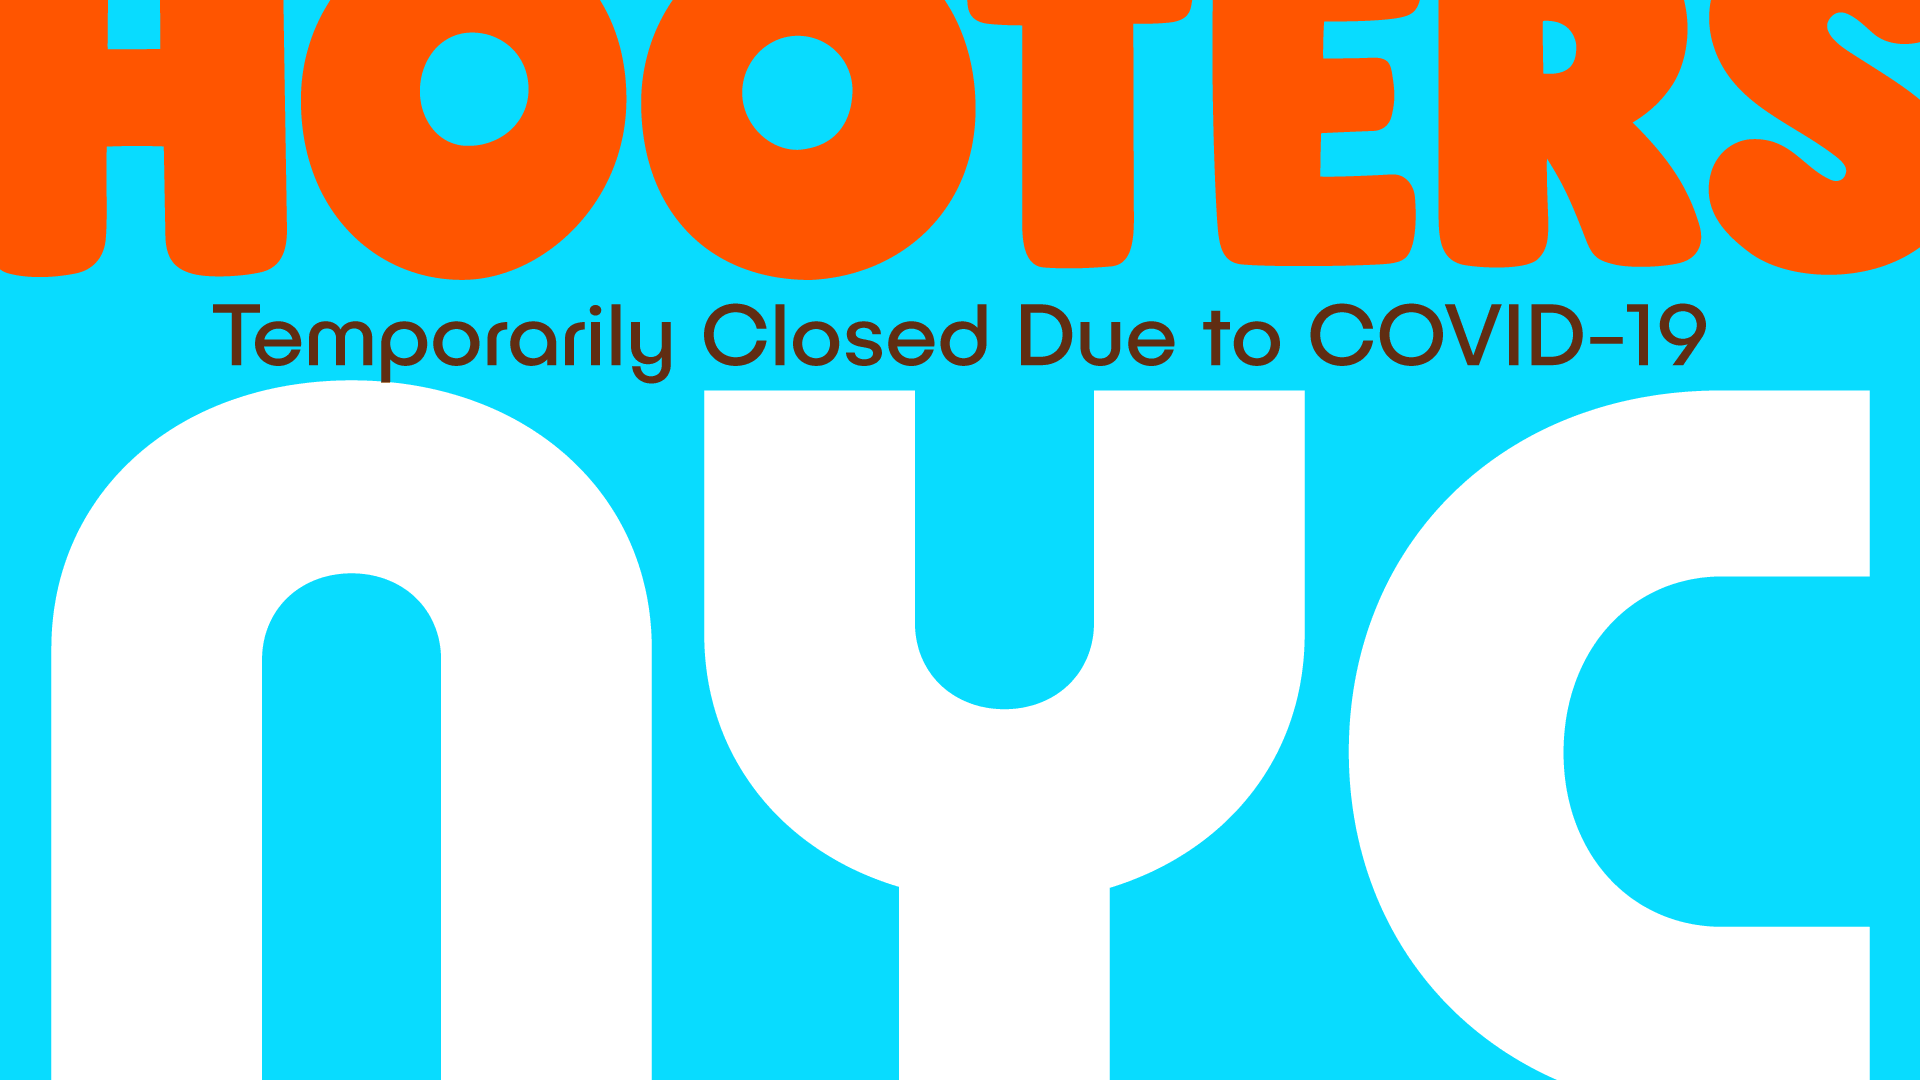 Hooters Manhattan - Temporarily Closed Due to COVID-19